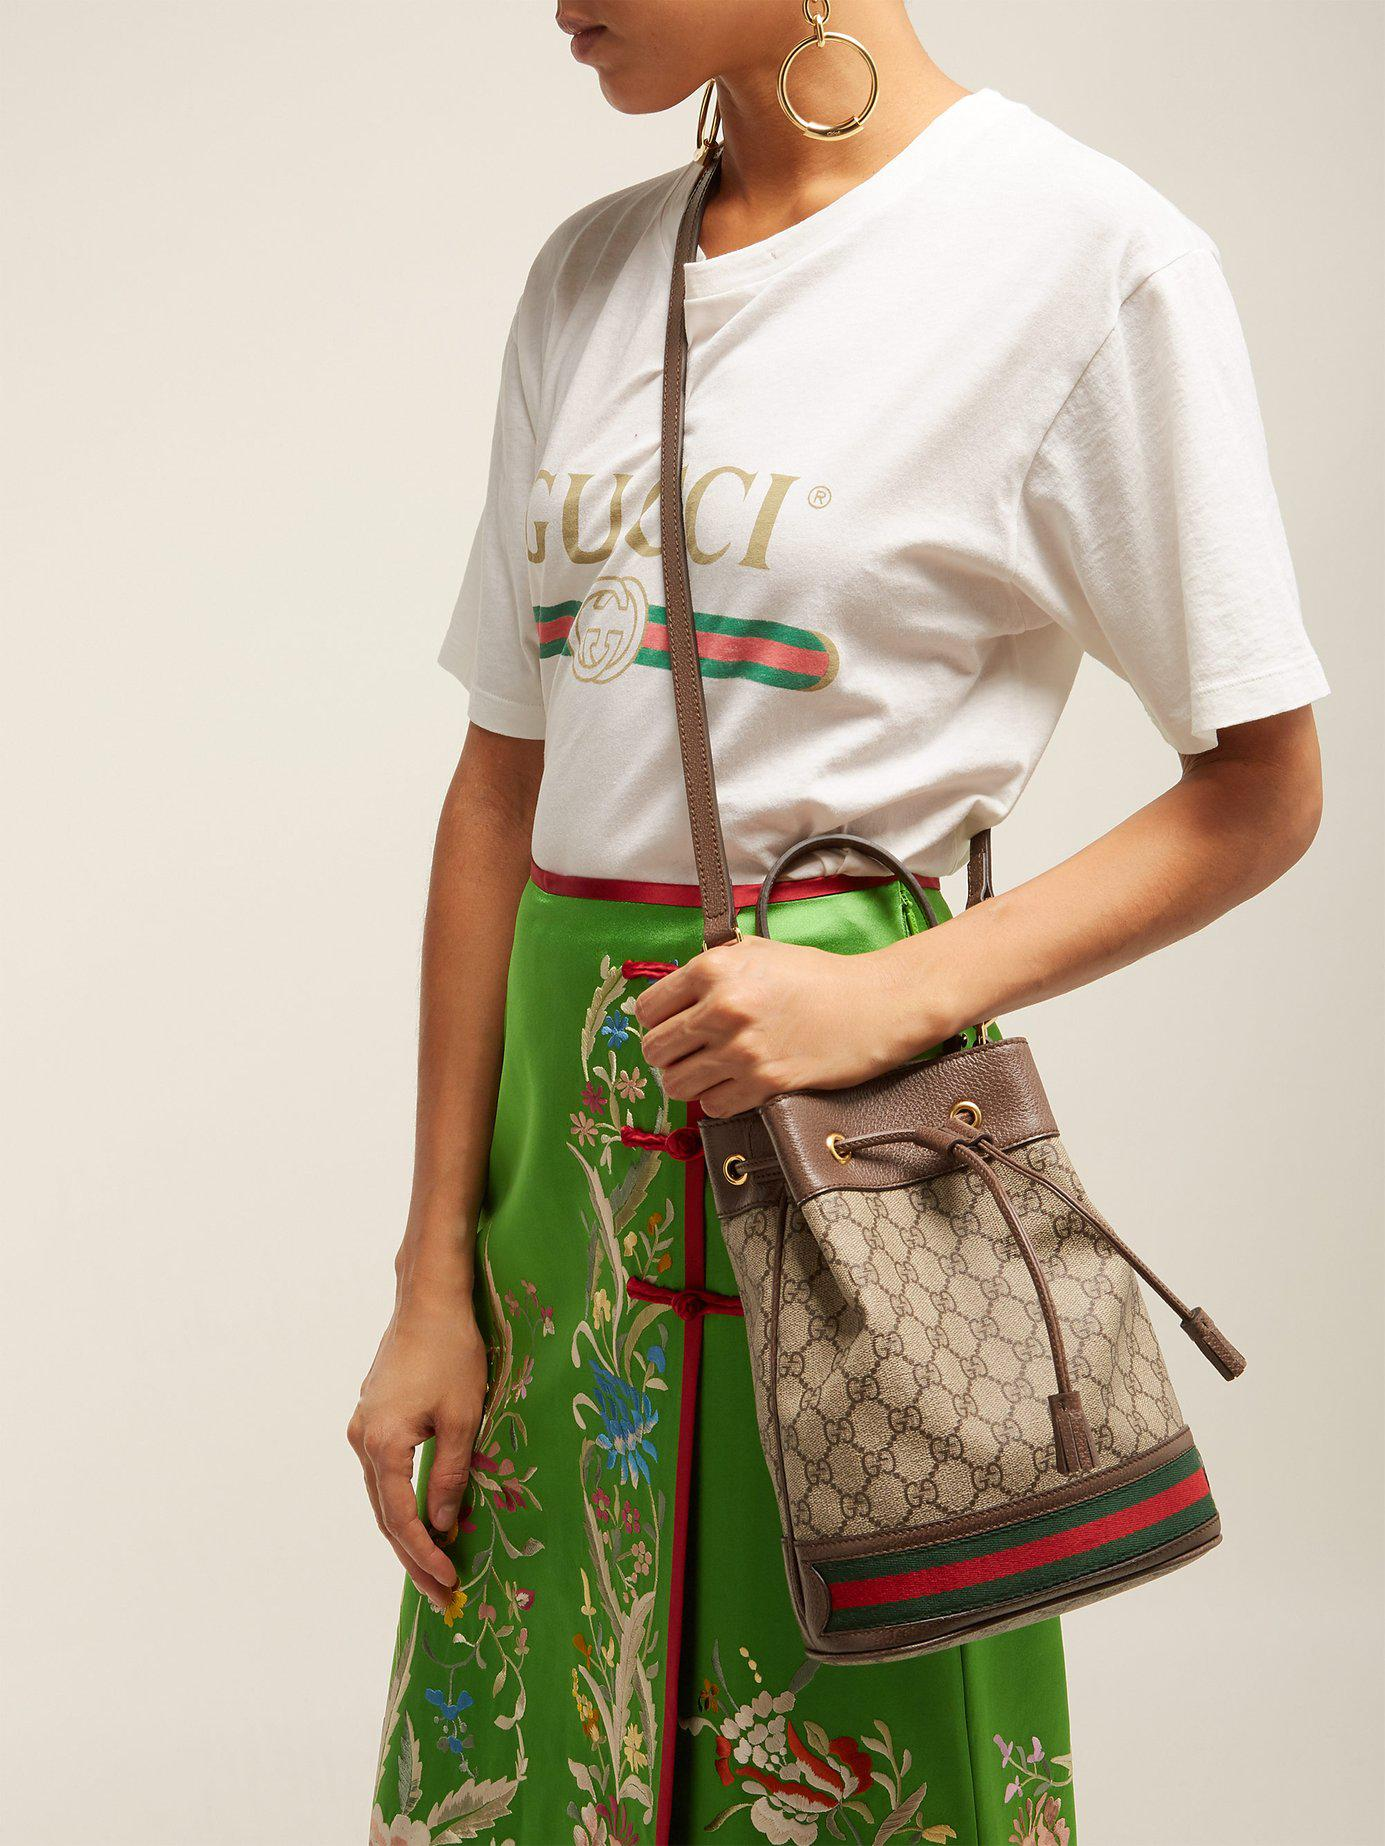 9f0492fdf Gucci Ophidia Gg Supreme Leather Bucket Bag - Lyst